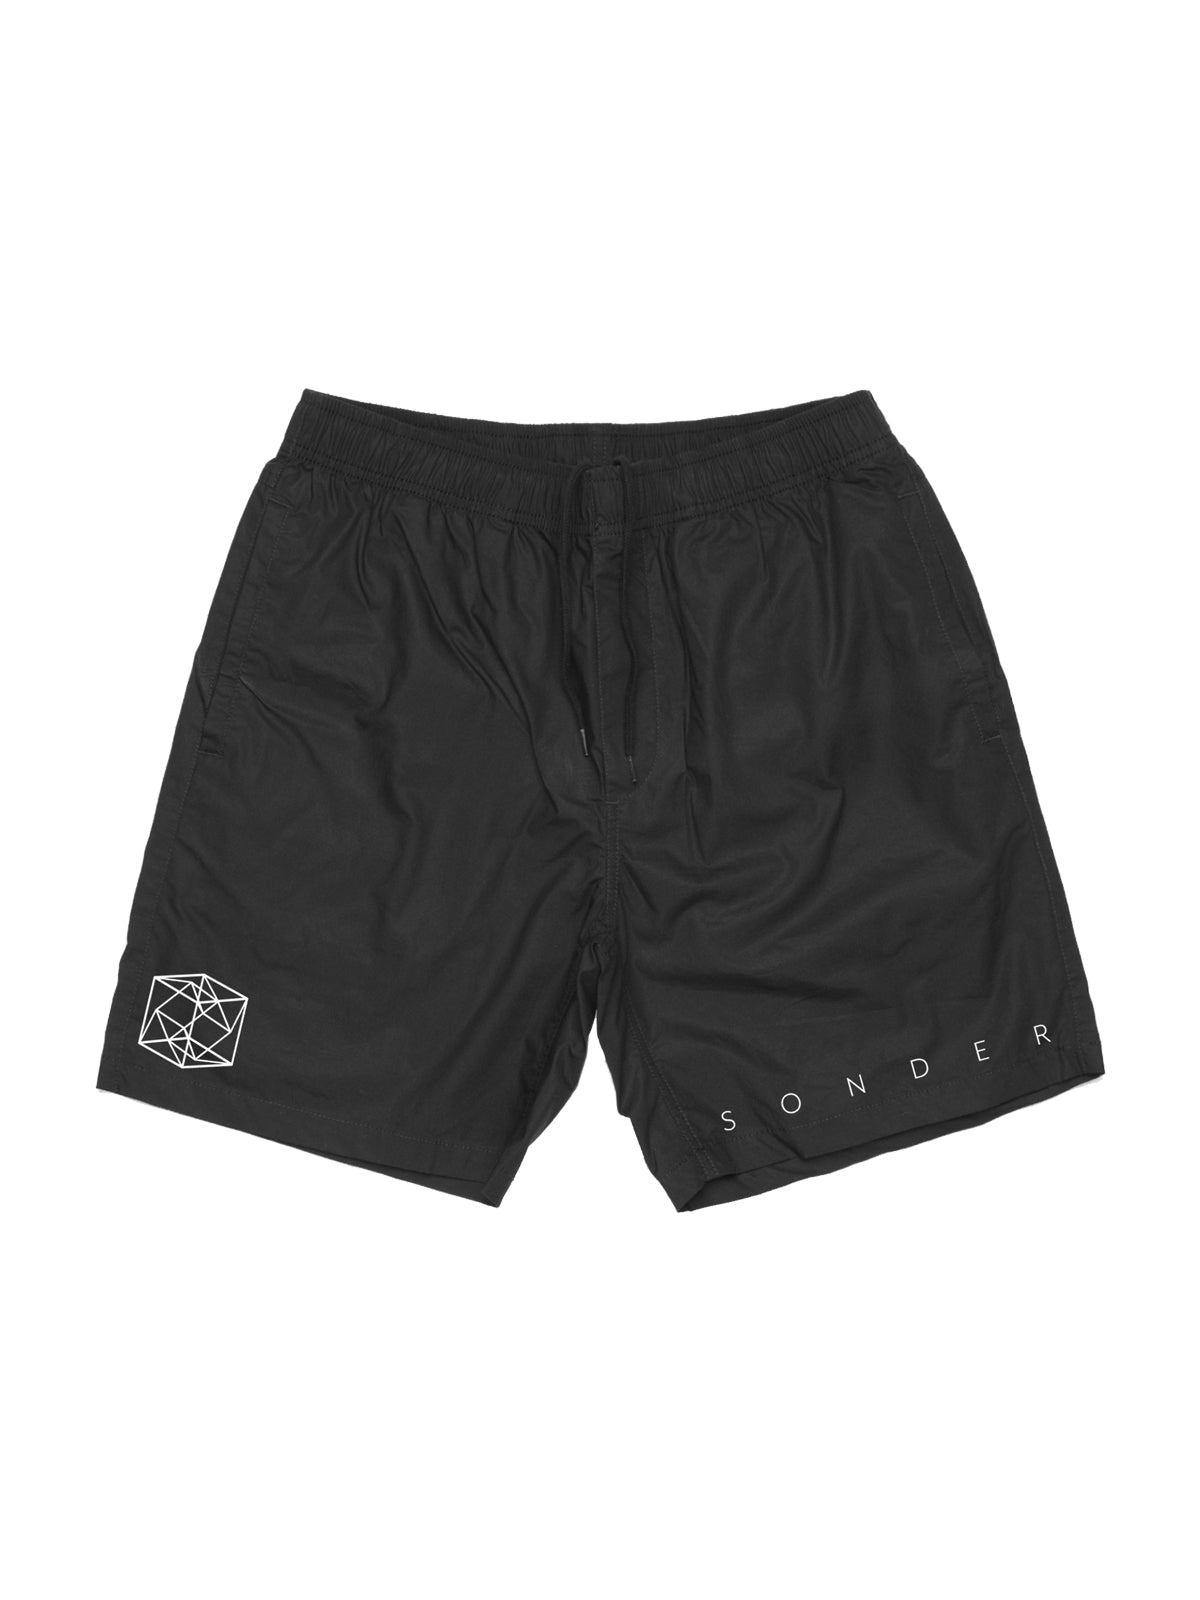 TesseracT - Sonder Beach Shorts - Merch Limited